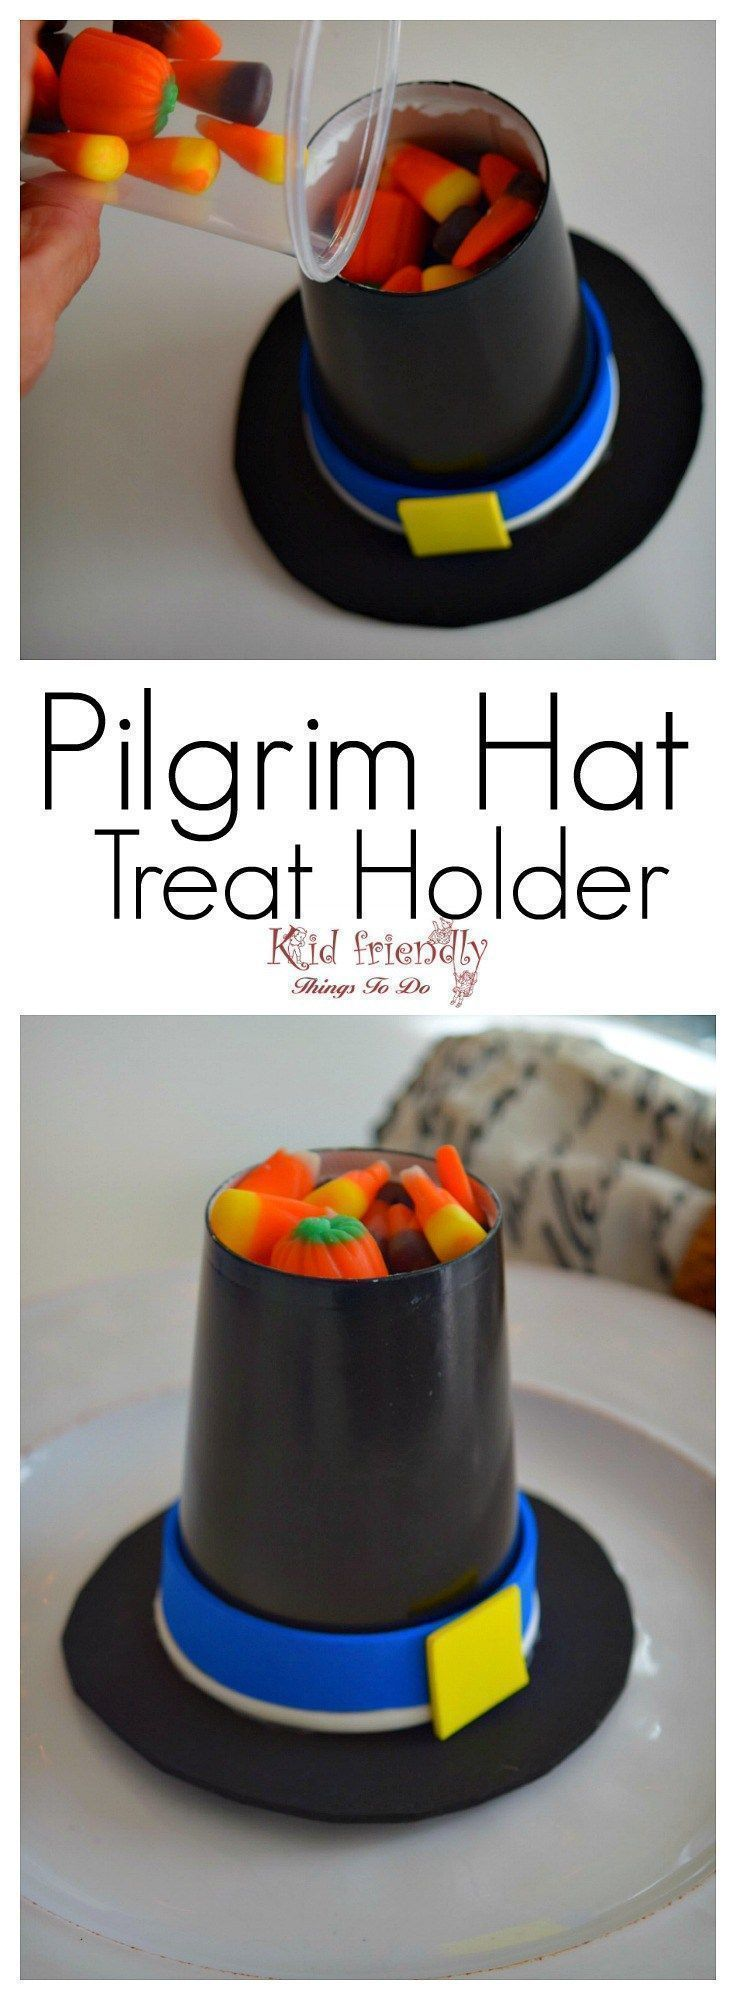 Pilgrim Hat Cup Treat Holder Craft for a Kid Friendly Thanksgiving ...